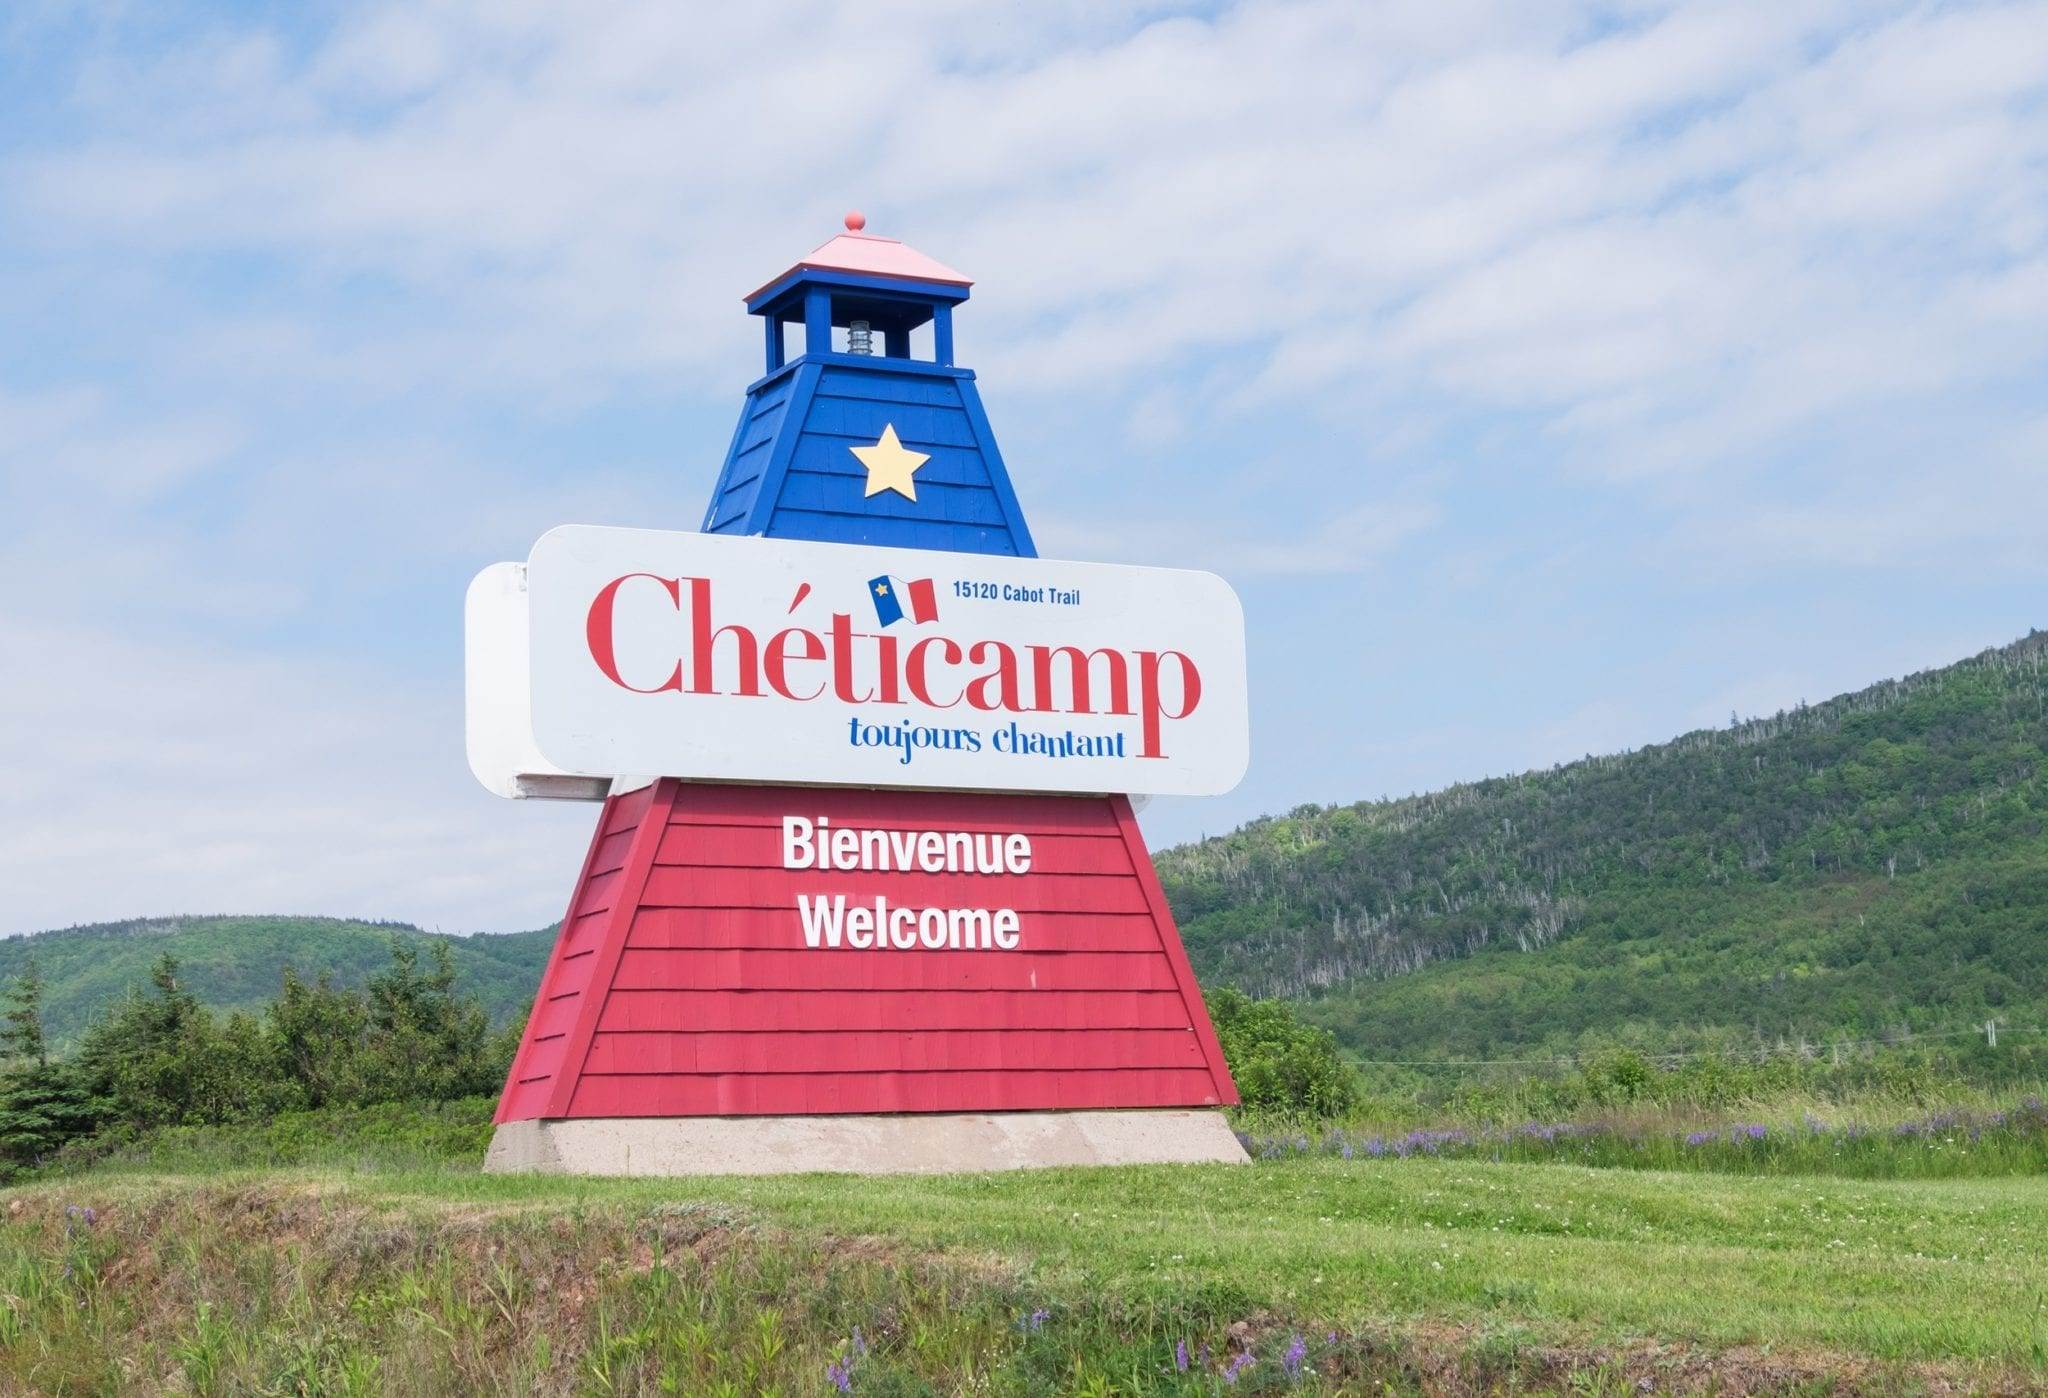 A red and blue Cheticamp sign shaped like a lighthouse.